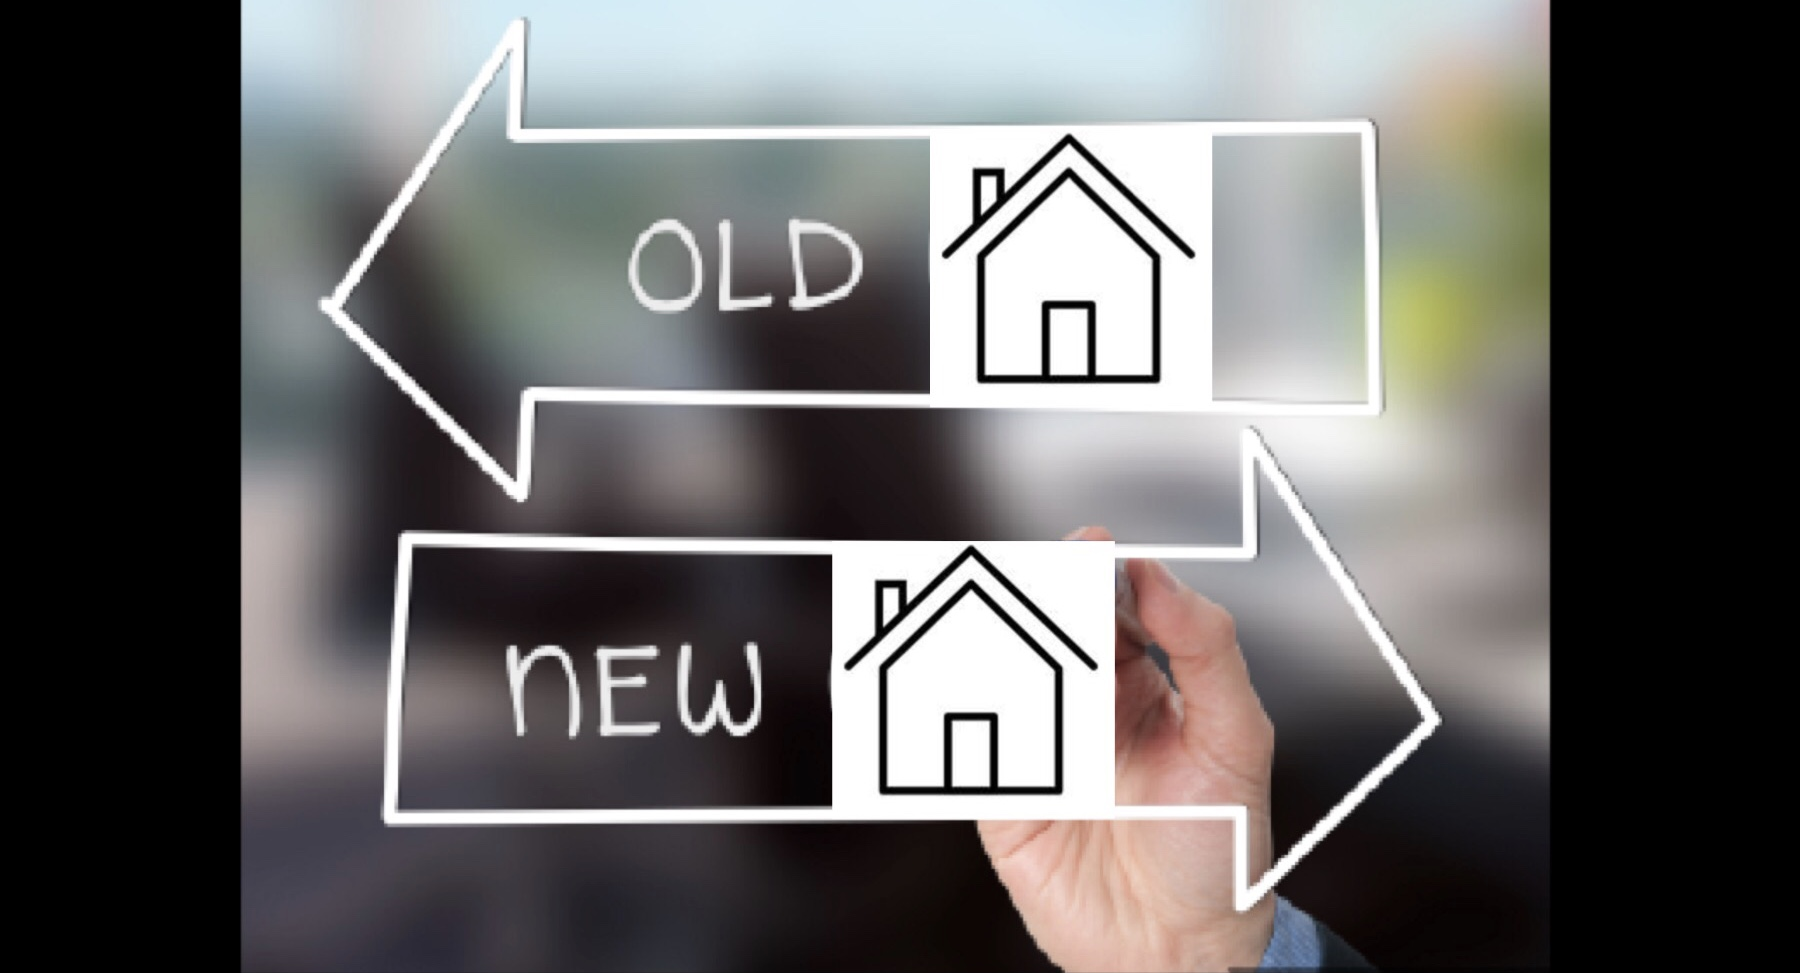 Can an existing dwelling be refurbished to qualify as a 'New Build' under the NDIS SDA (Specialist Disability Accommodation)?